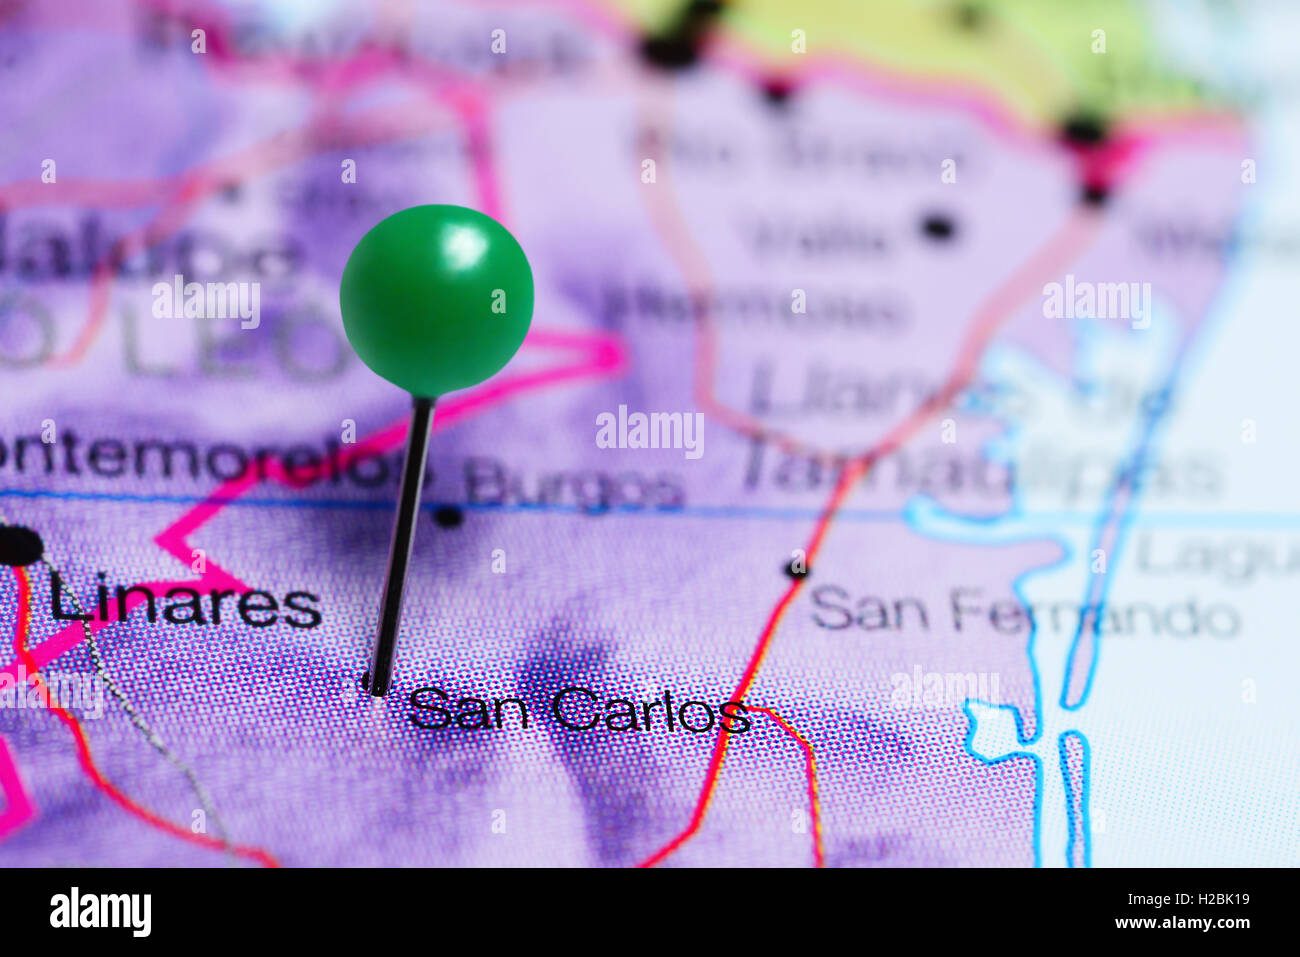 San Carlos pinned on a map of Mexico Stock Photo: 121958293 - Alamy